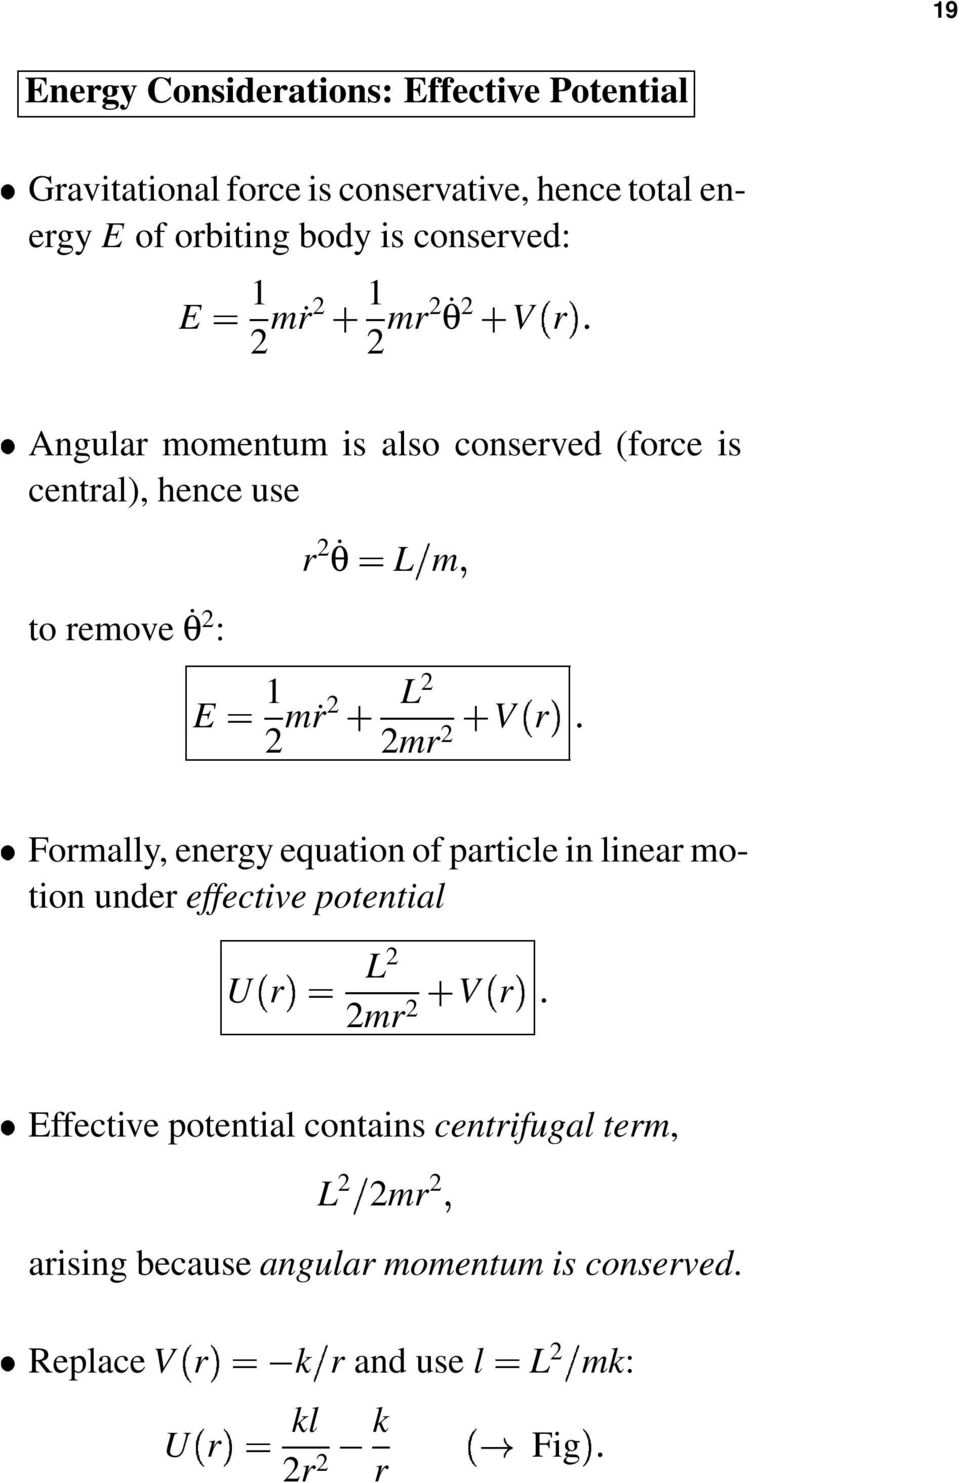 2 mṙ2 L 2 2m 2 V Fomally, enegy equation of paticle in linea motion unde effective U potential 2 V L 2 2m 2 Effective